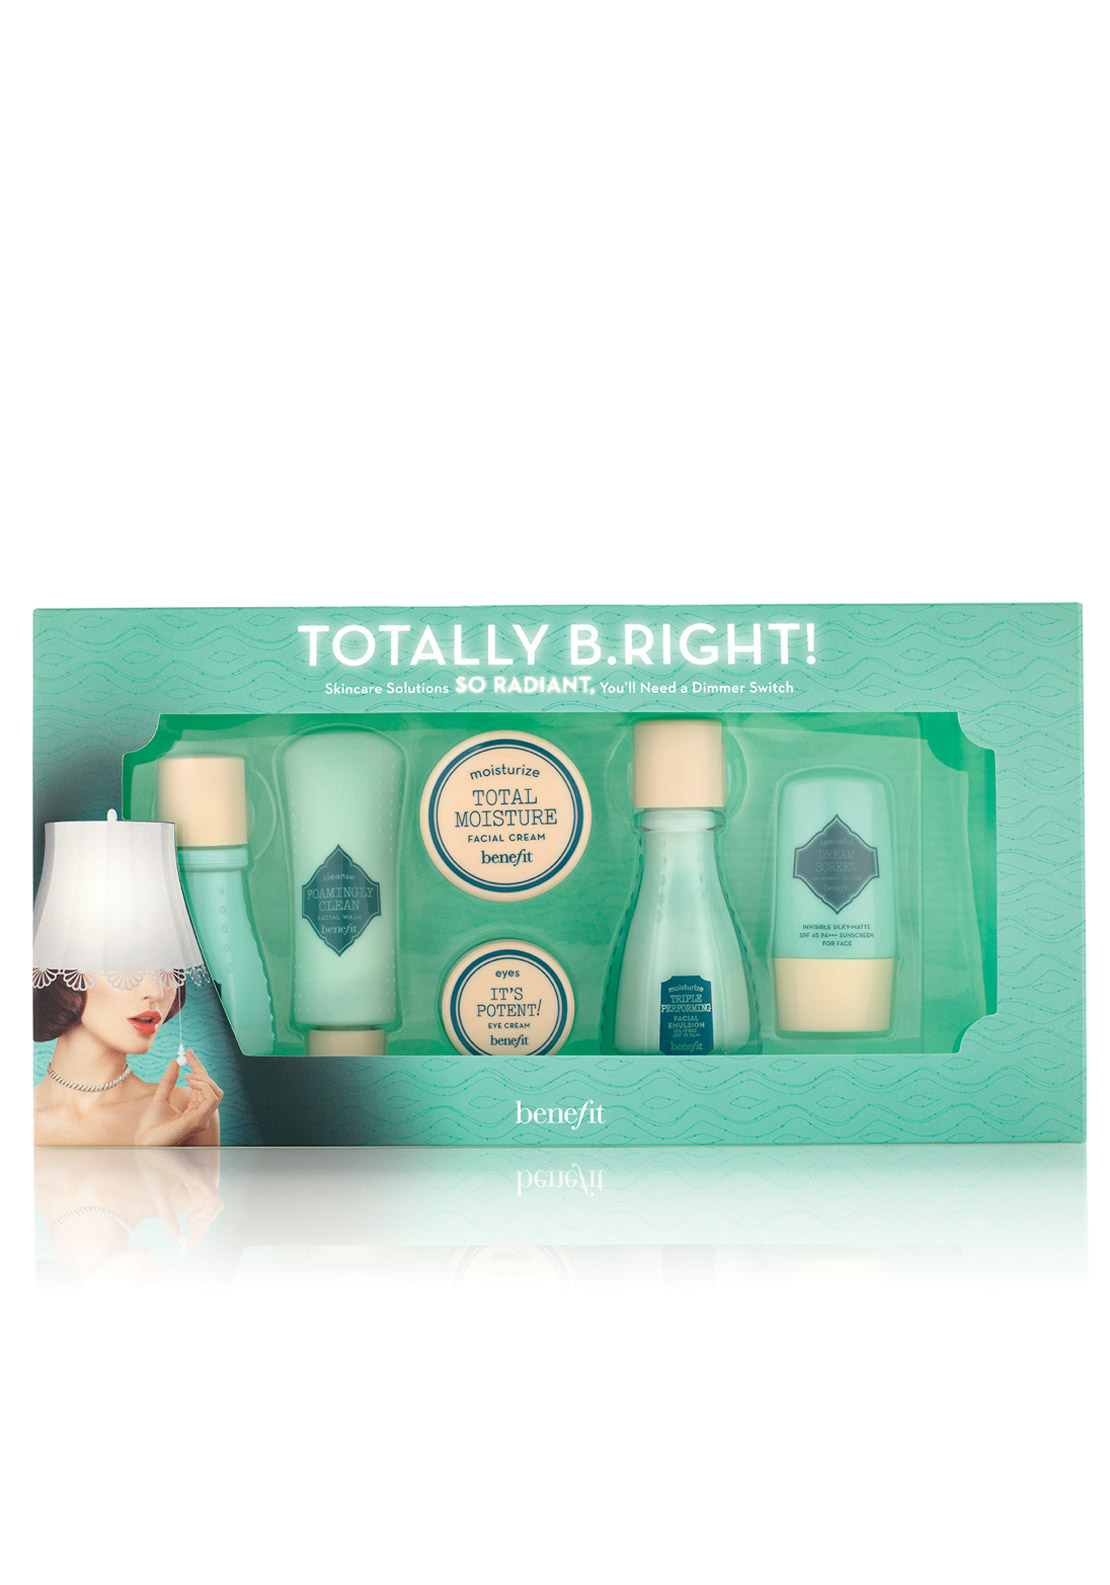 Benefit Totally B.Right! 6 Piece Skincare Set